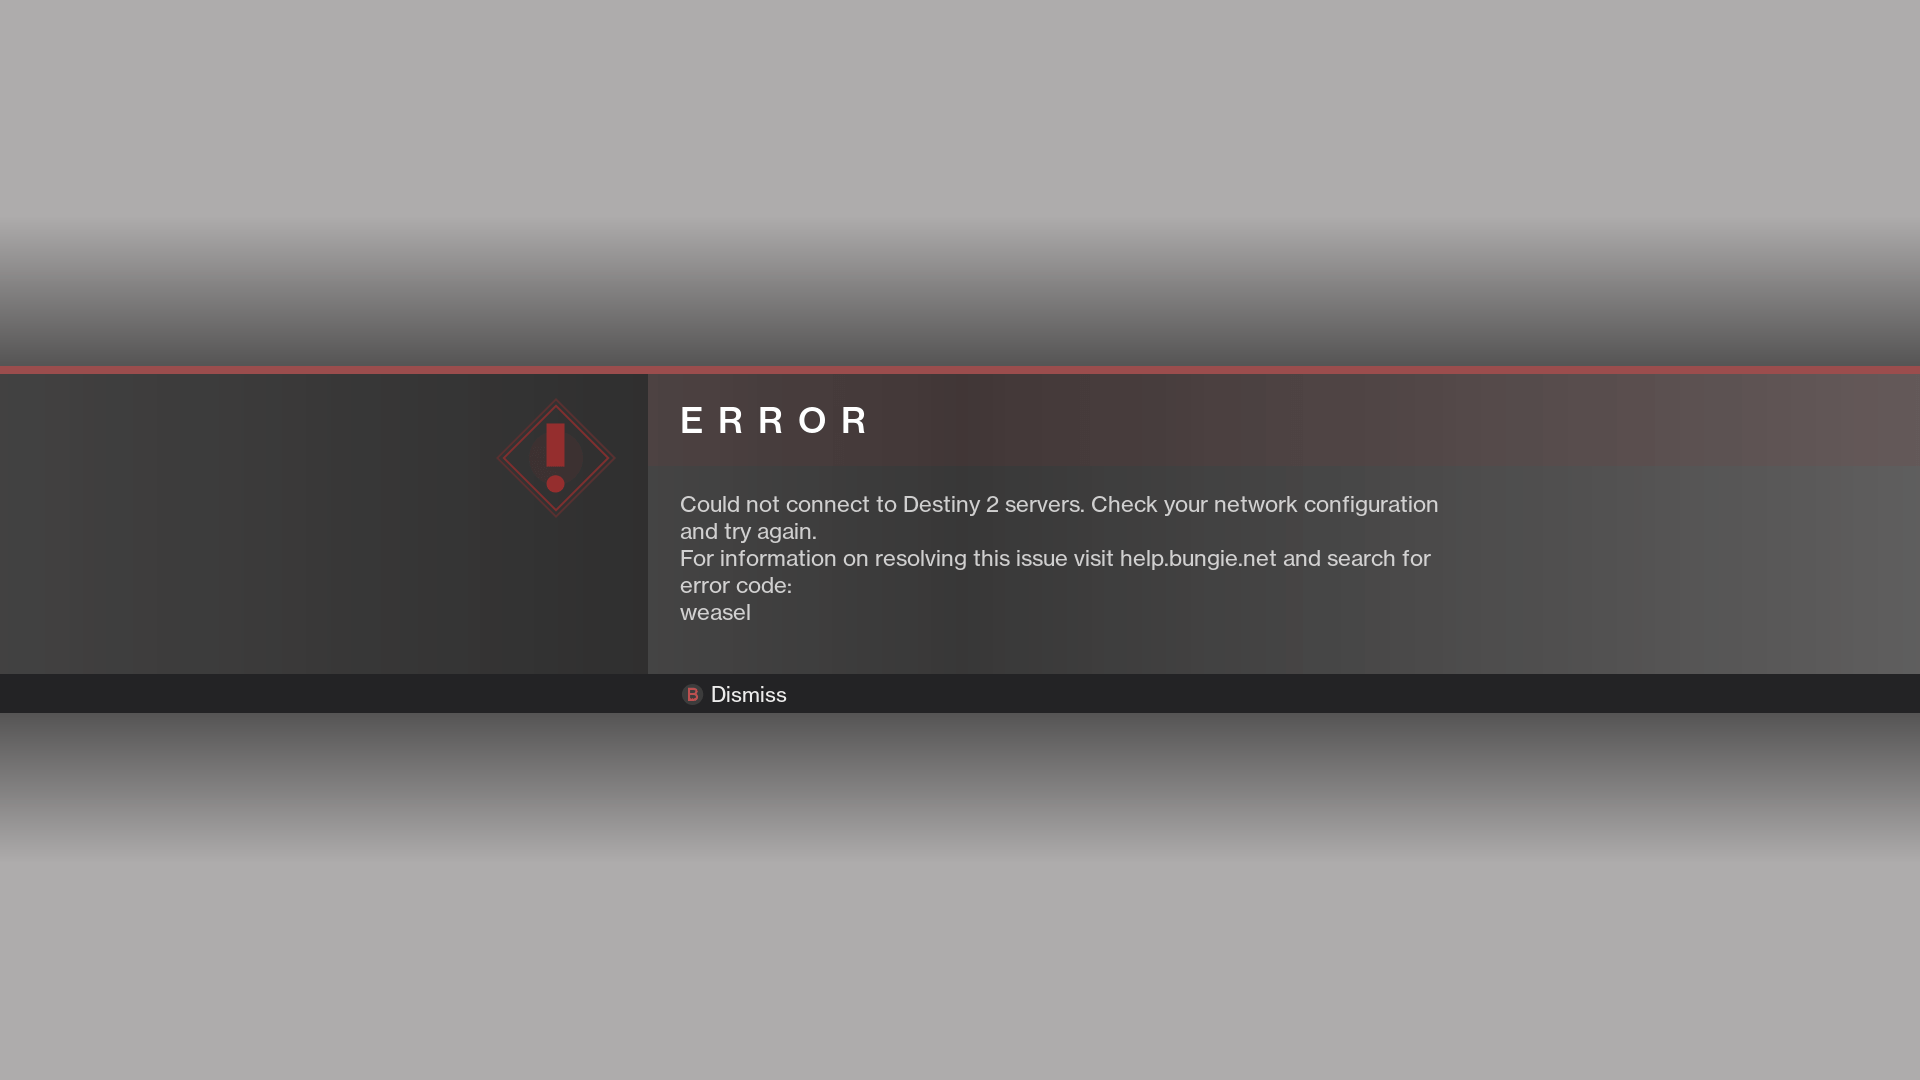 How To Fix Destiny Error Code Weasel Issue Easy Fix